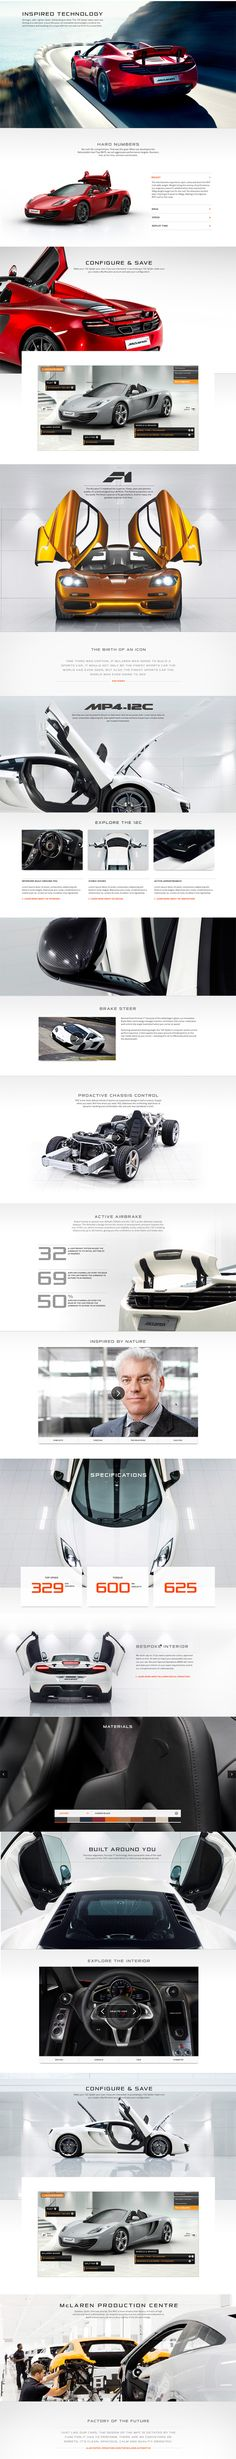 McLaren Automotive Website by Thomas Moeller, via Behance